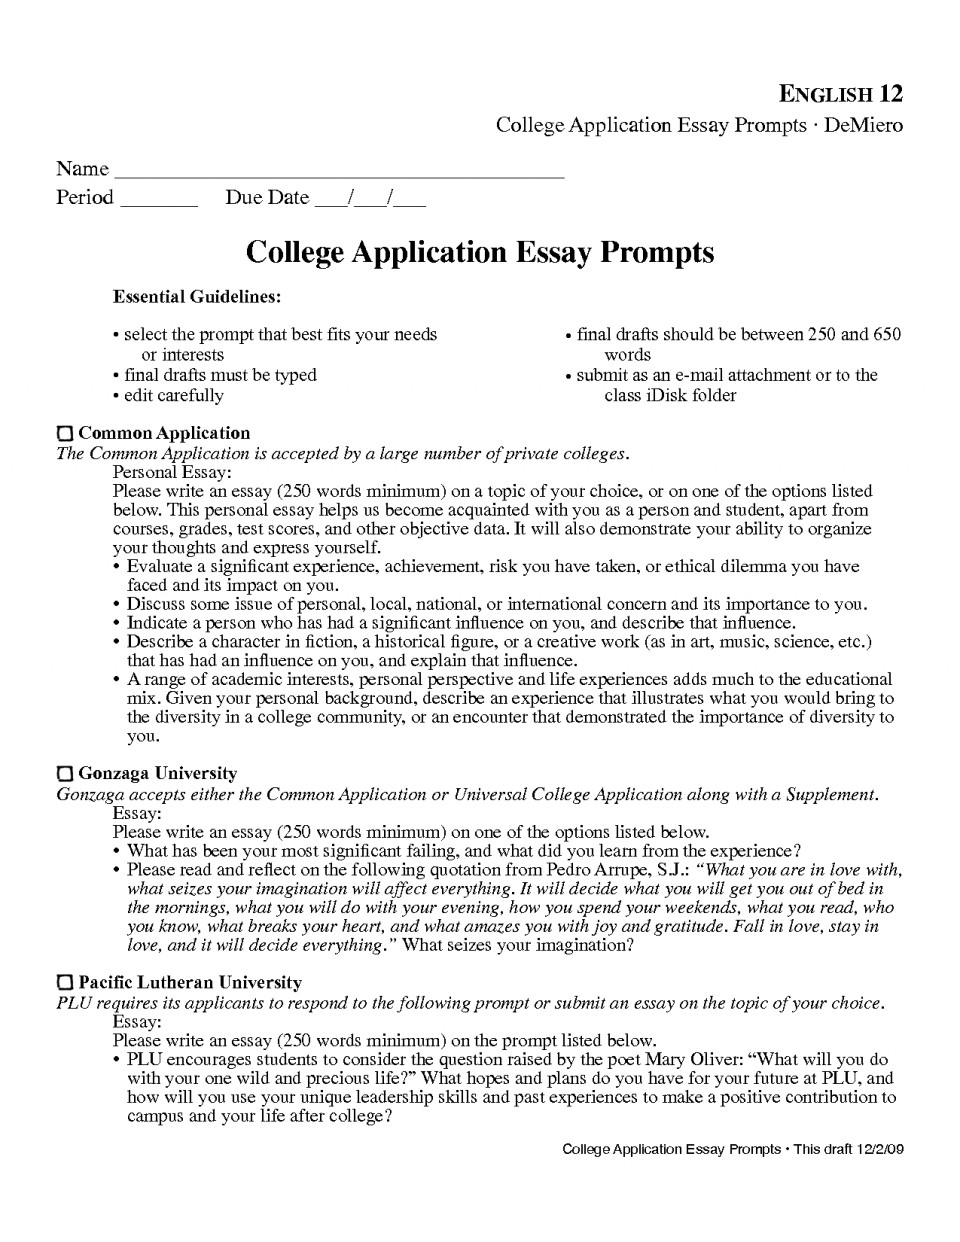 003 Essay Example Common App Prompts Provided By Application College Examples Physic Minimalistics Co Inside Formidable Prompt 1 Transfer 2017 2015 960